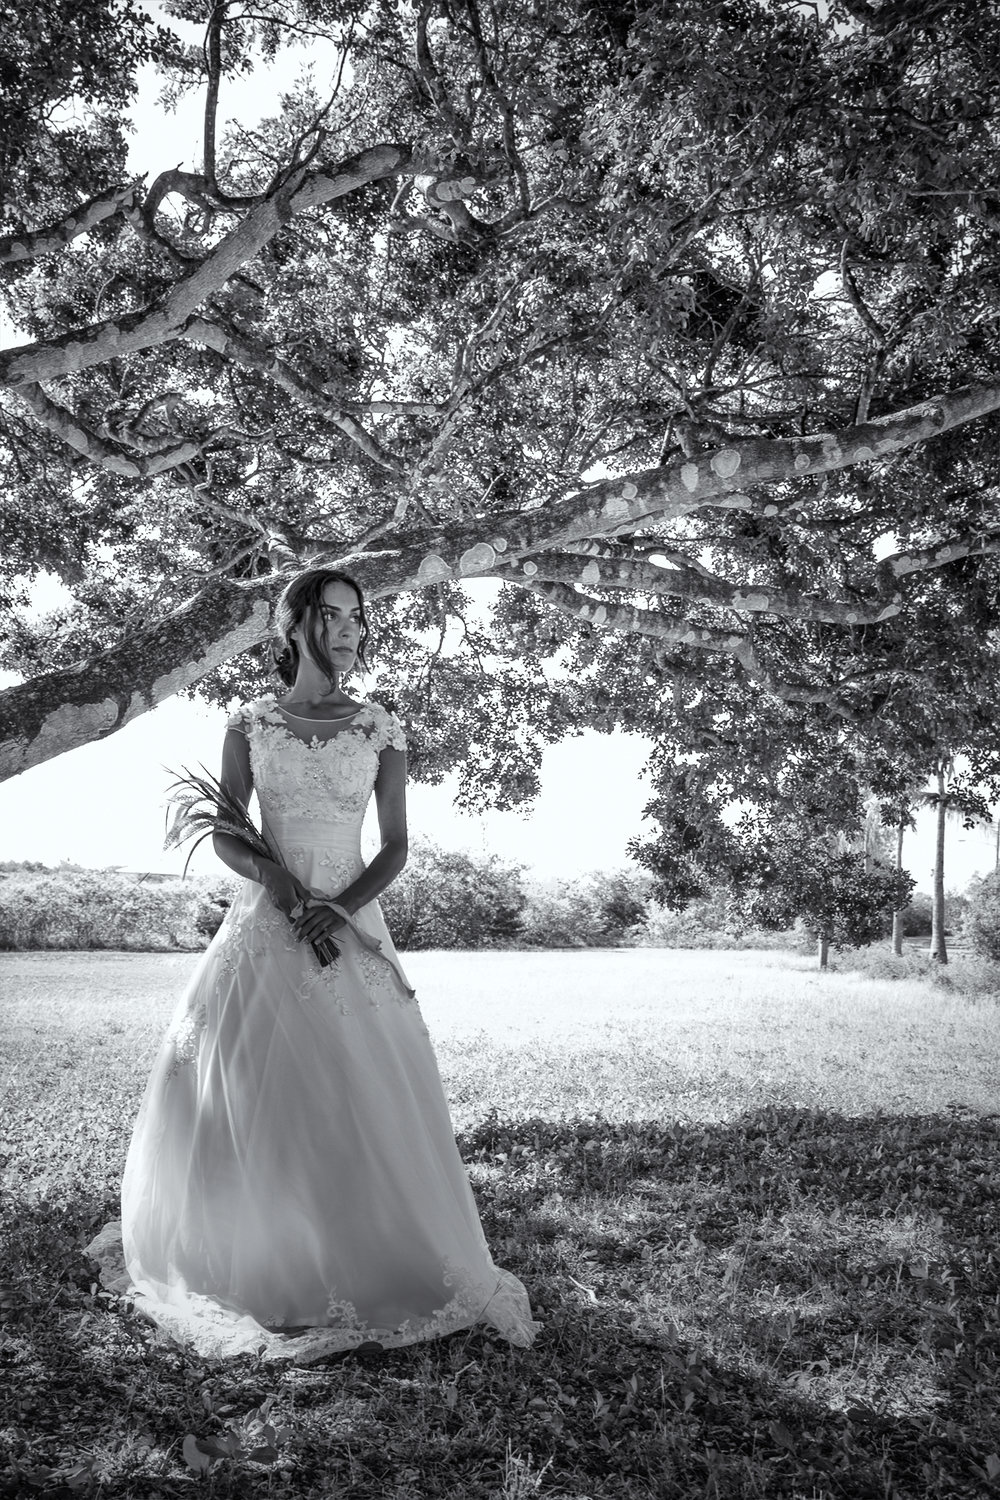 black and white b&w wedding photography best practices